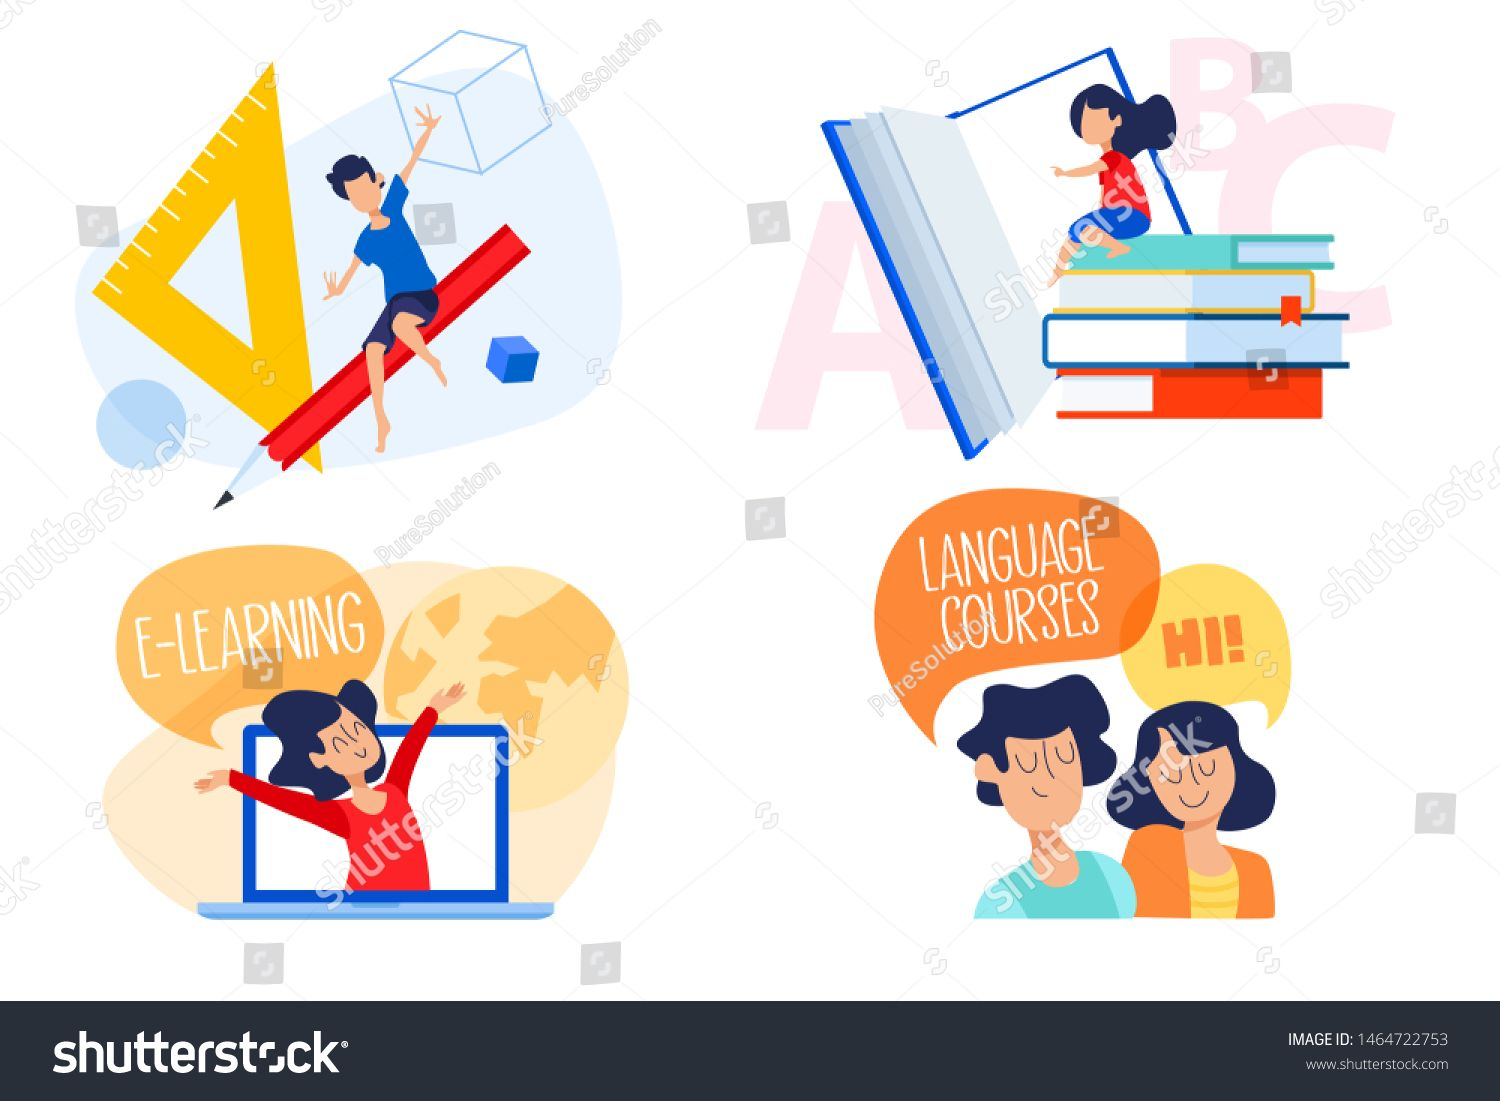 Flat design concept of education, elearning, language